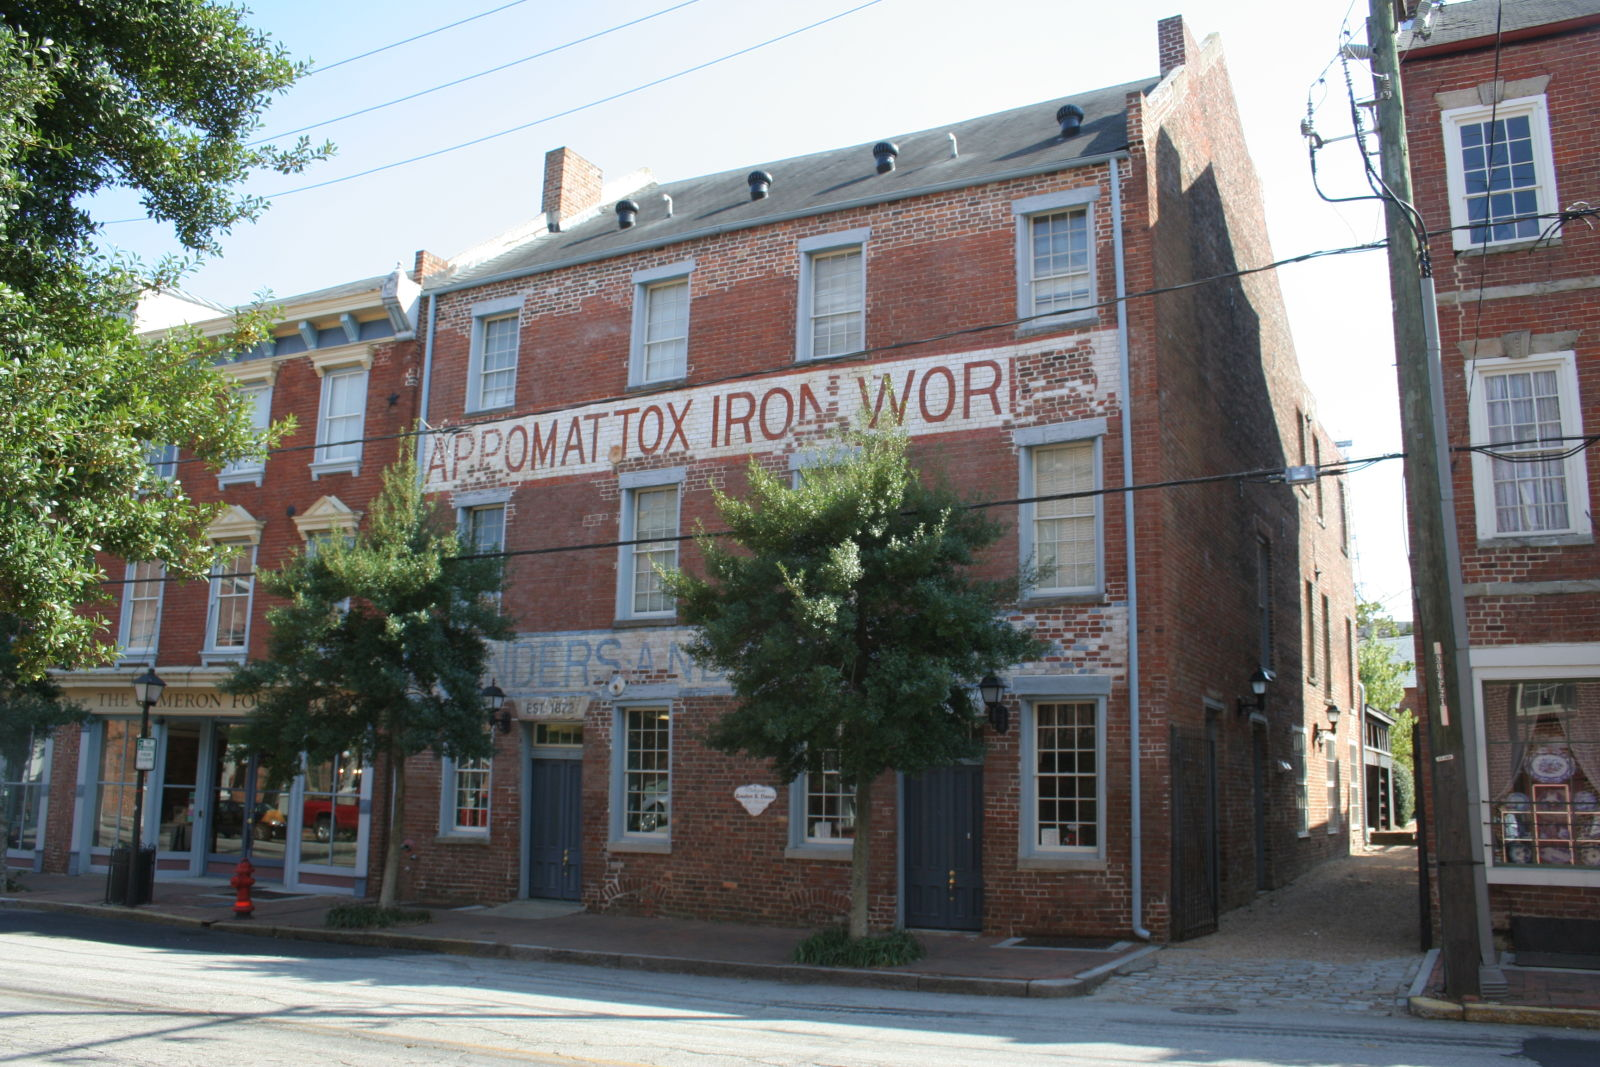 Built in 1815, the machine shop building at Appomattox Iron Works is the oldest in the complex and is an early example of Federal architecture in Petersburg. Photo by John Reidy.